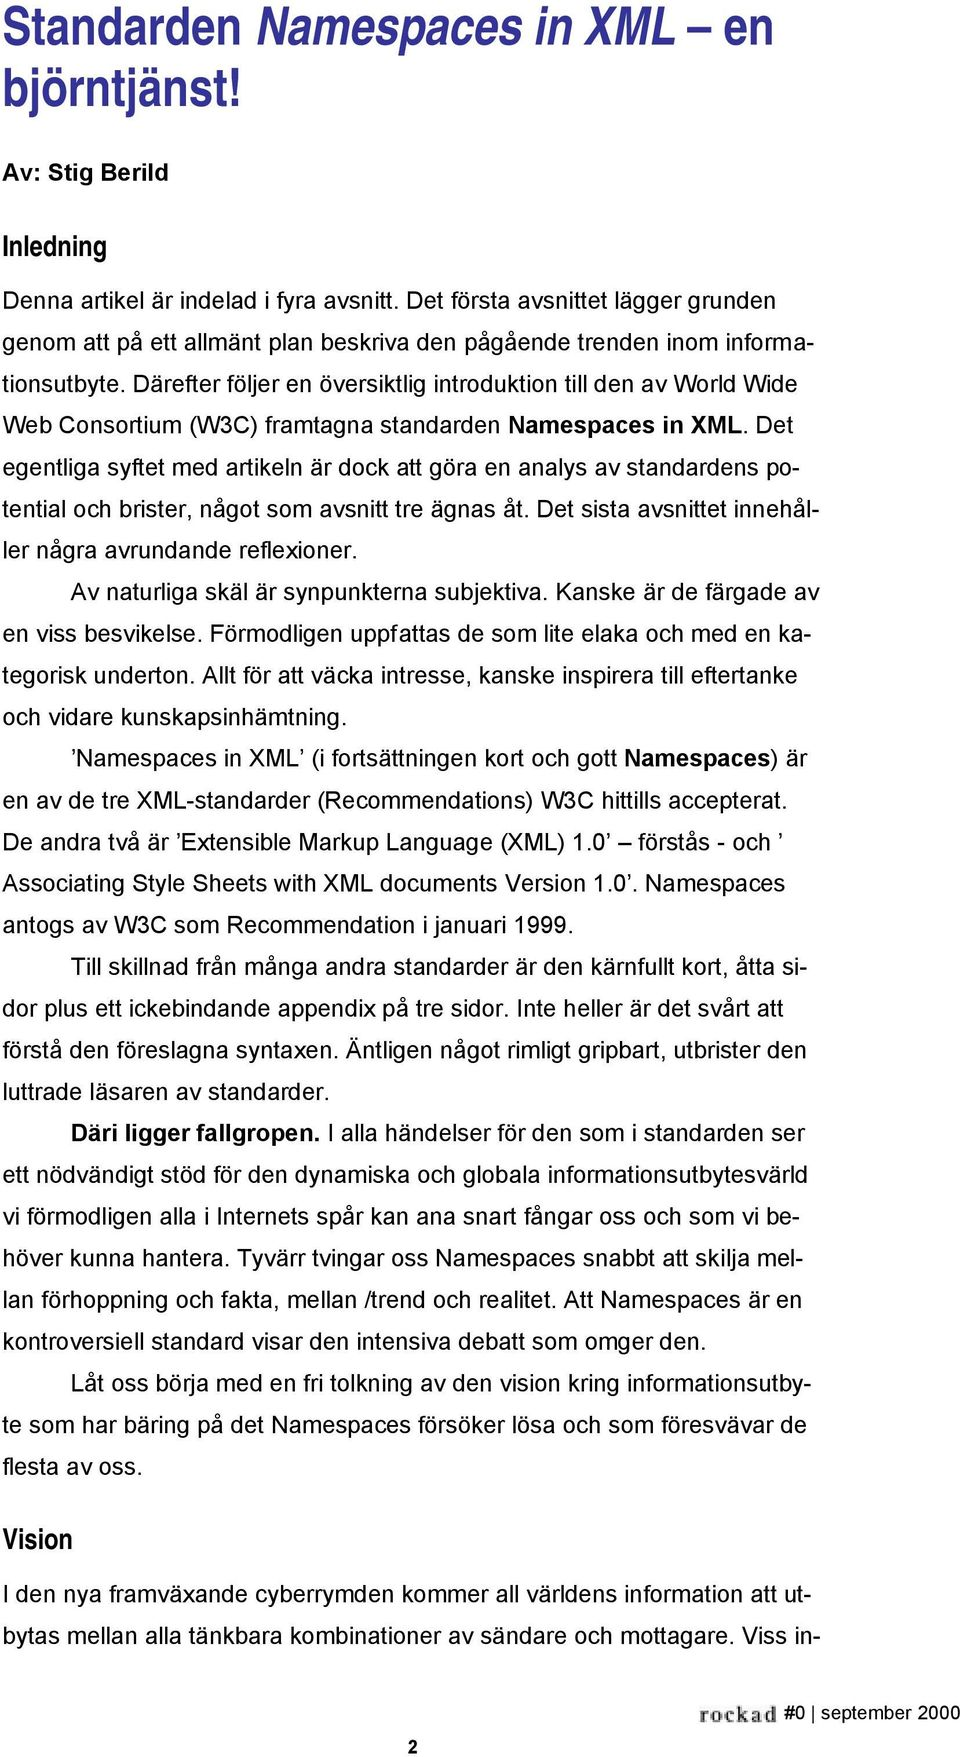 Därefter följer en översiktlig introduktion till den av World Wide Web Consortium (W3C) framtagna standarden Namespaces in XML.